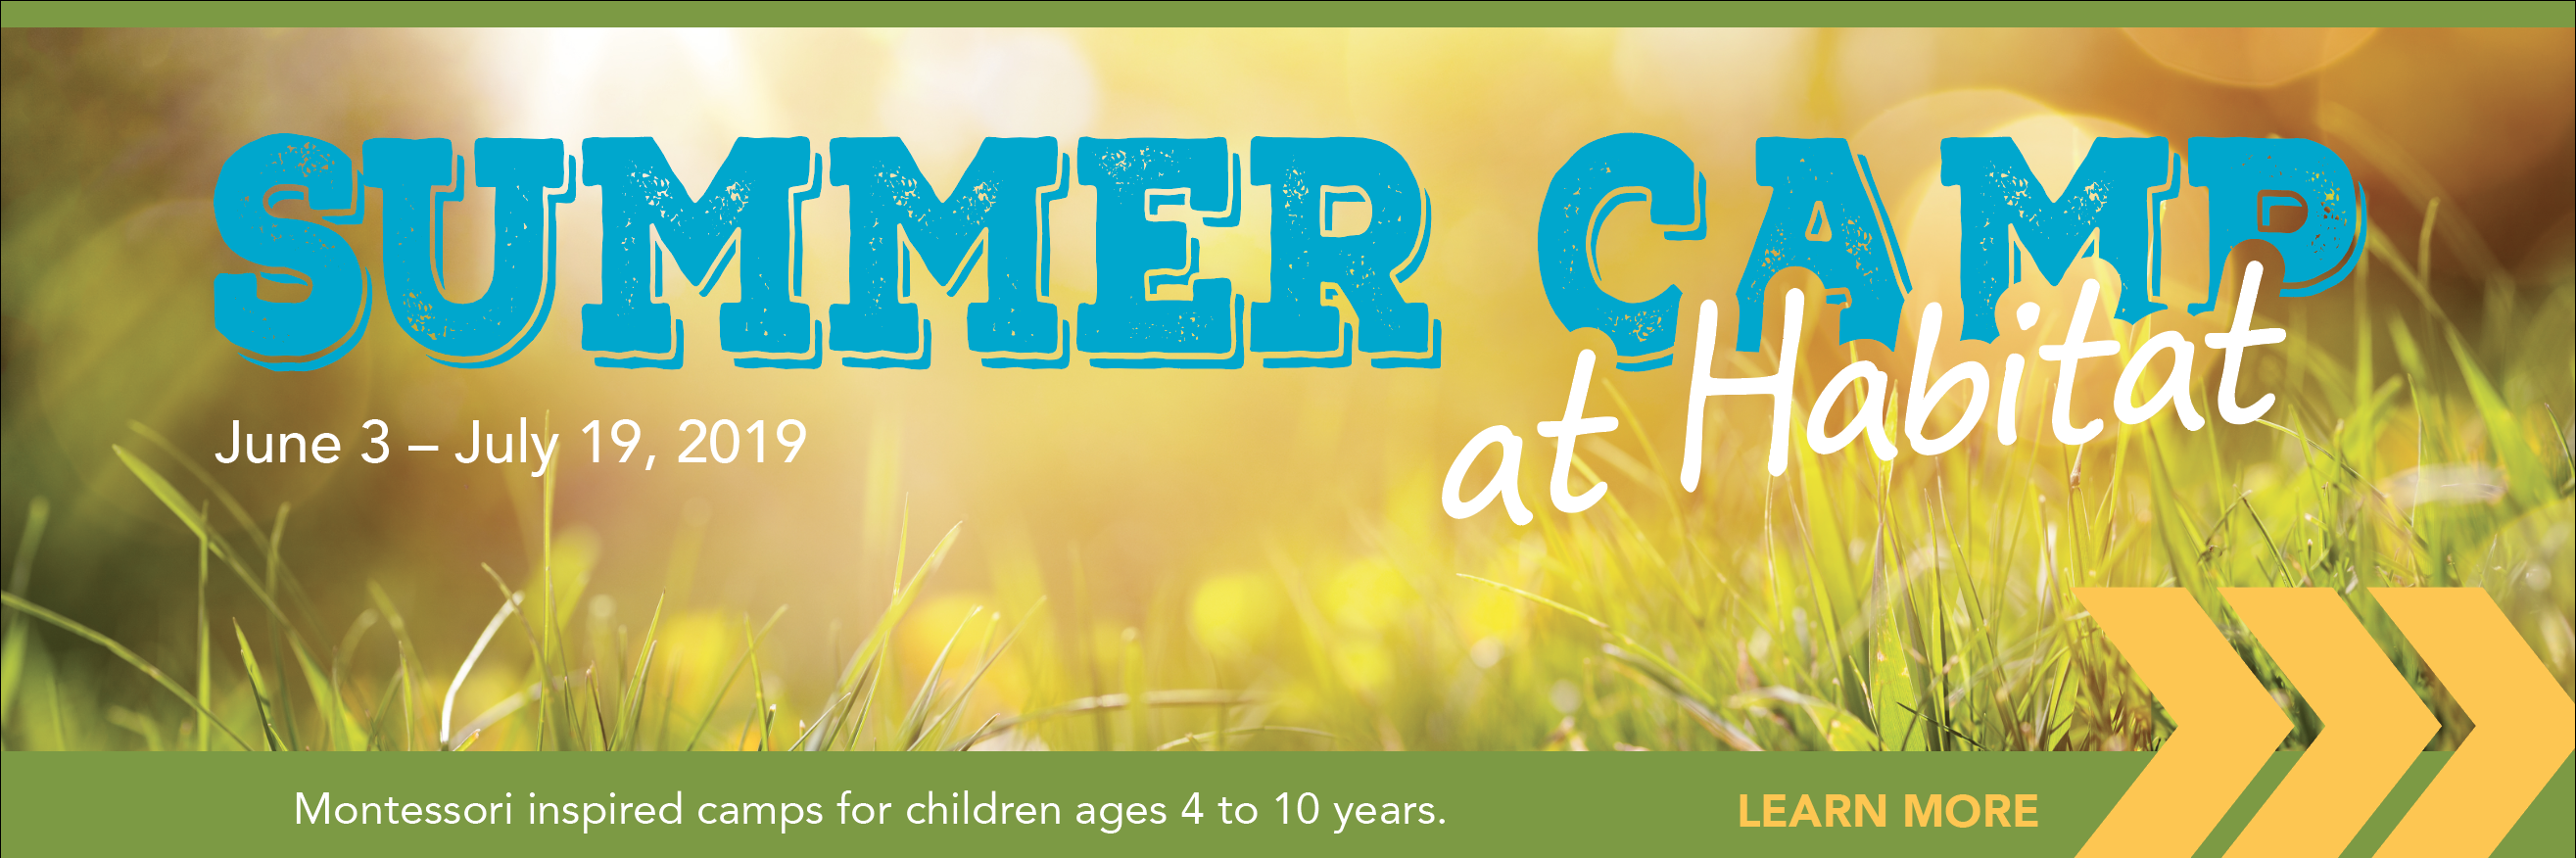 Summer Camp at Habitat 2019